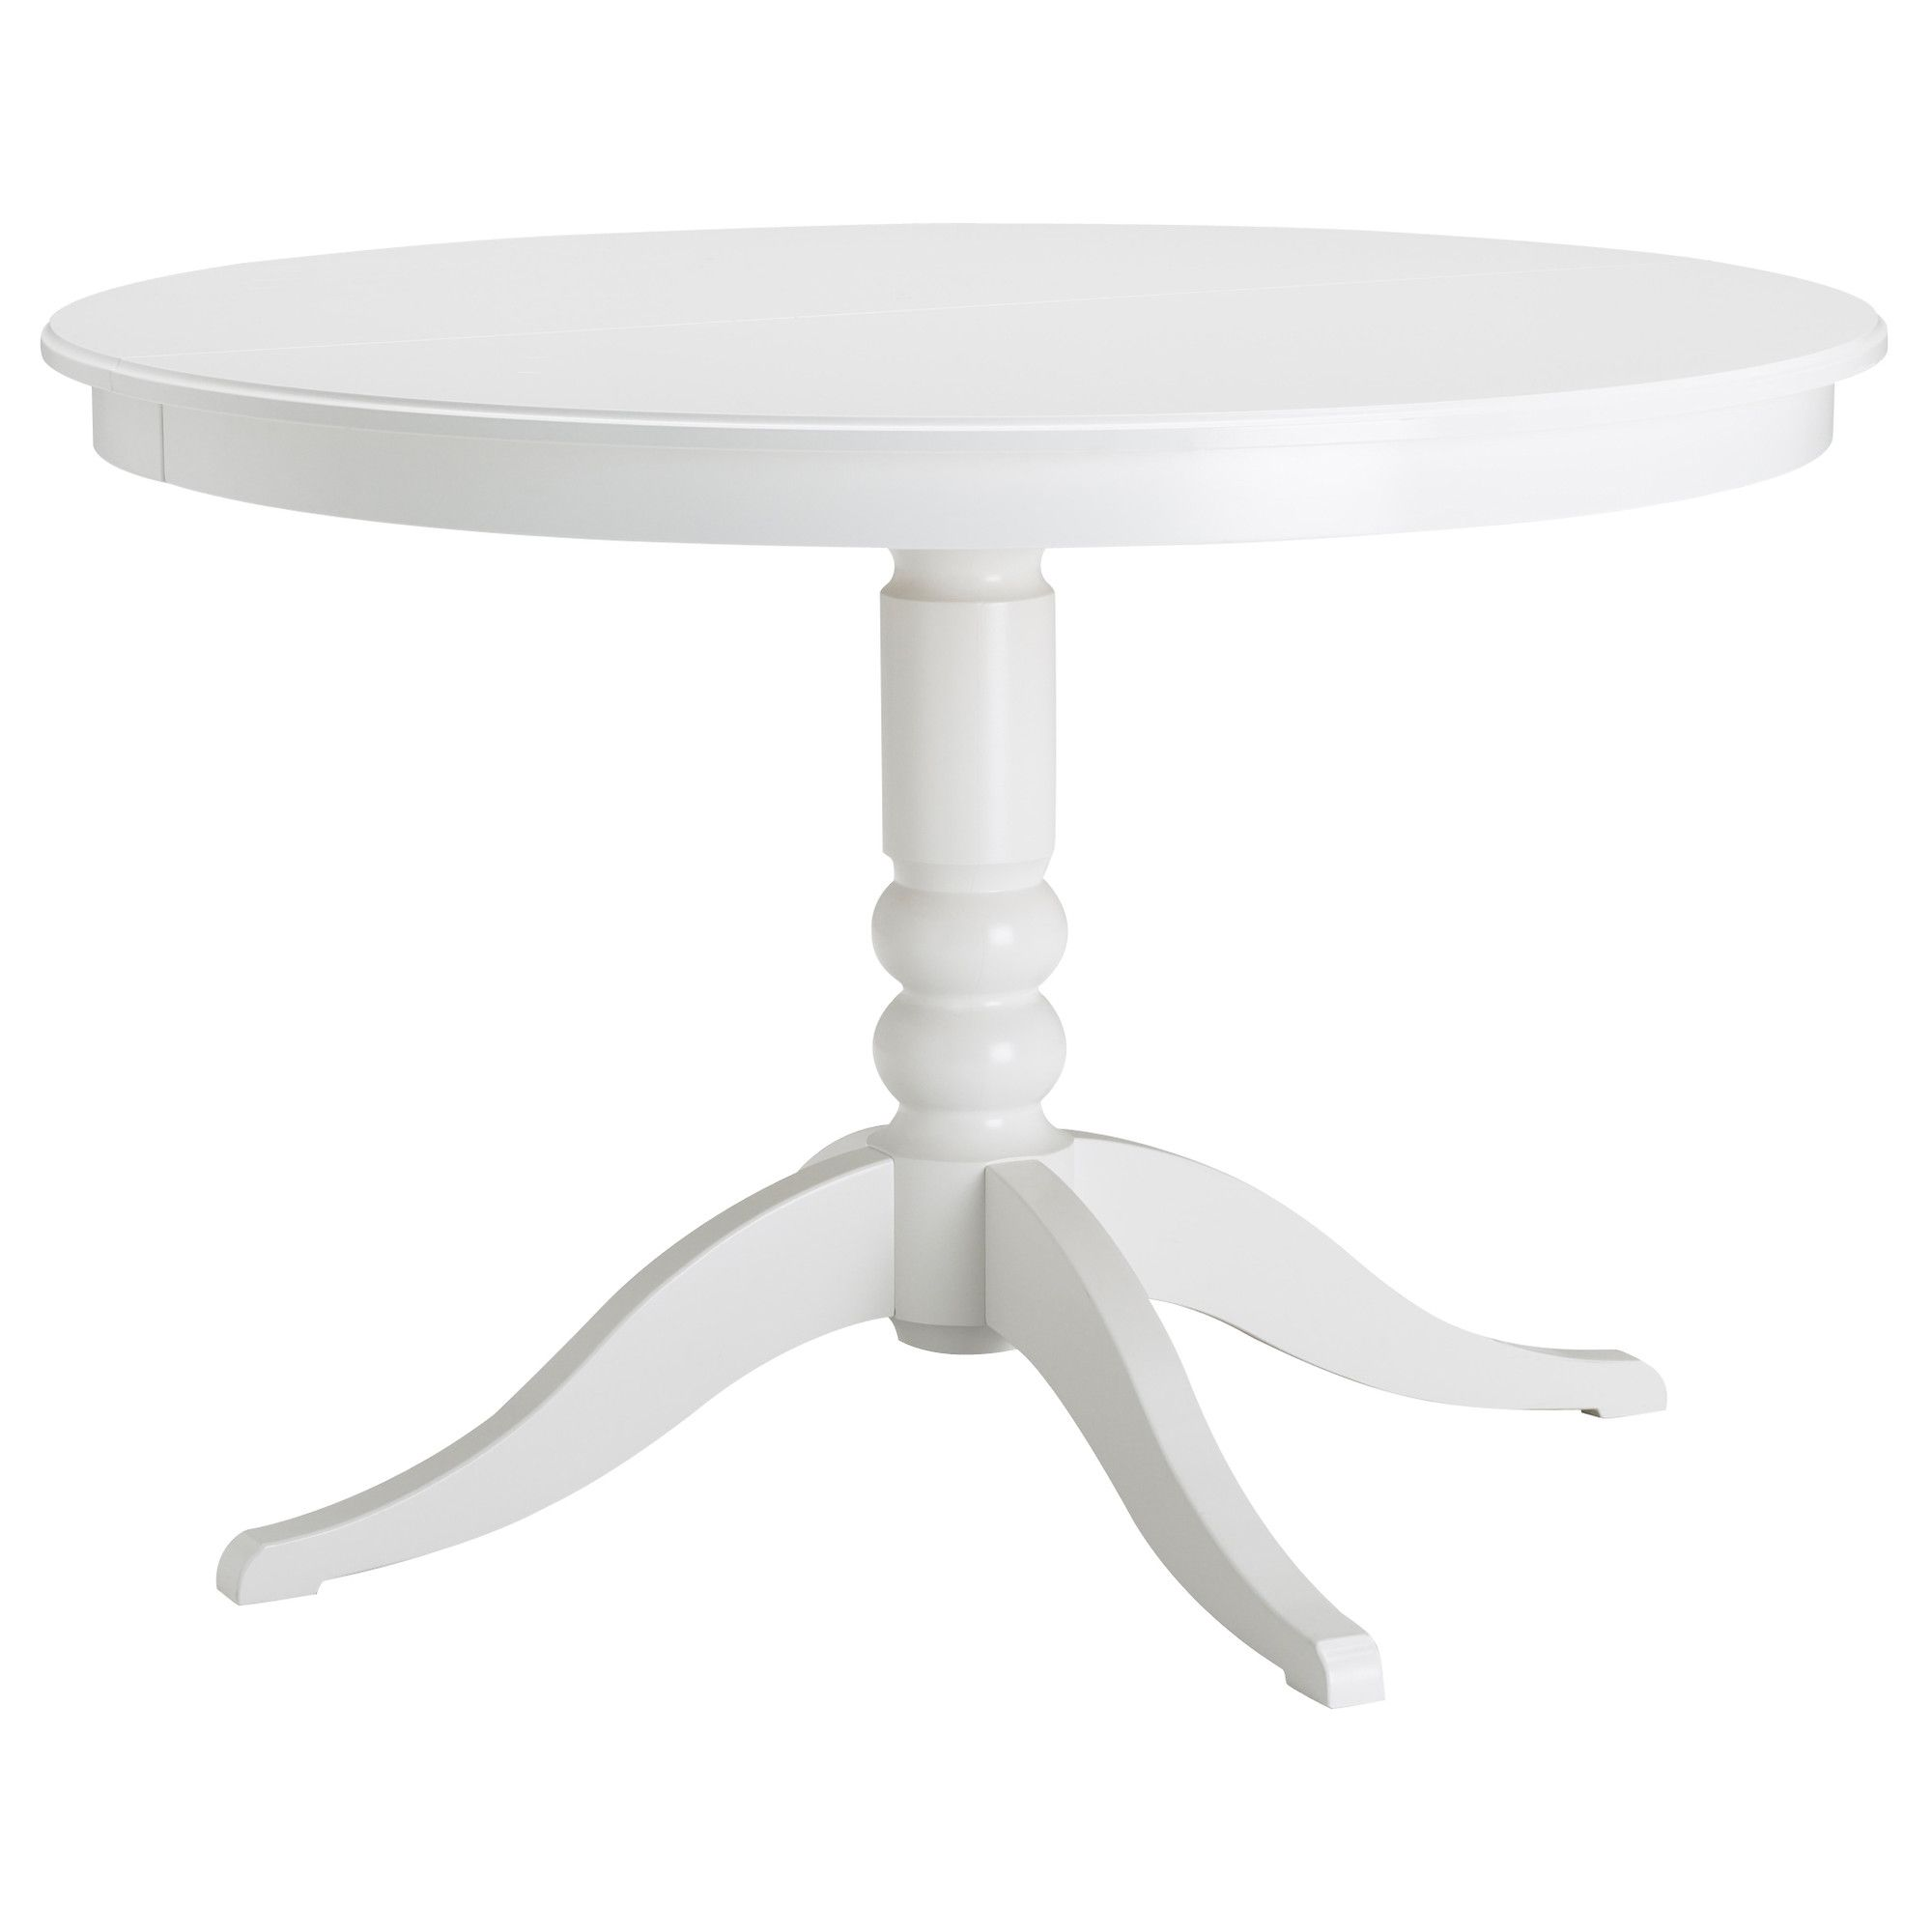 Furniture And Home Furnishings Ikea Dining Round Dining Table Dining Table